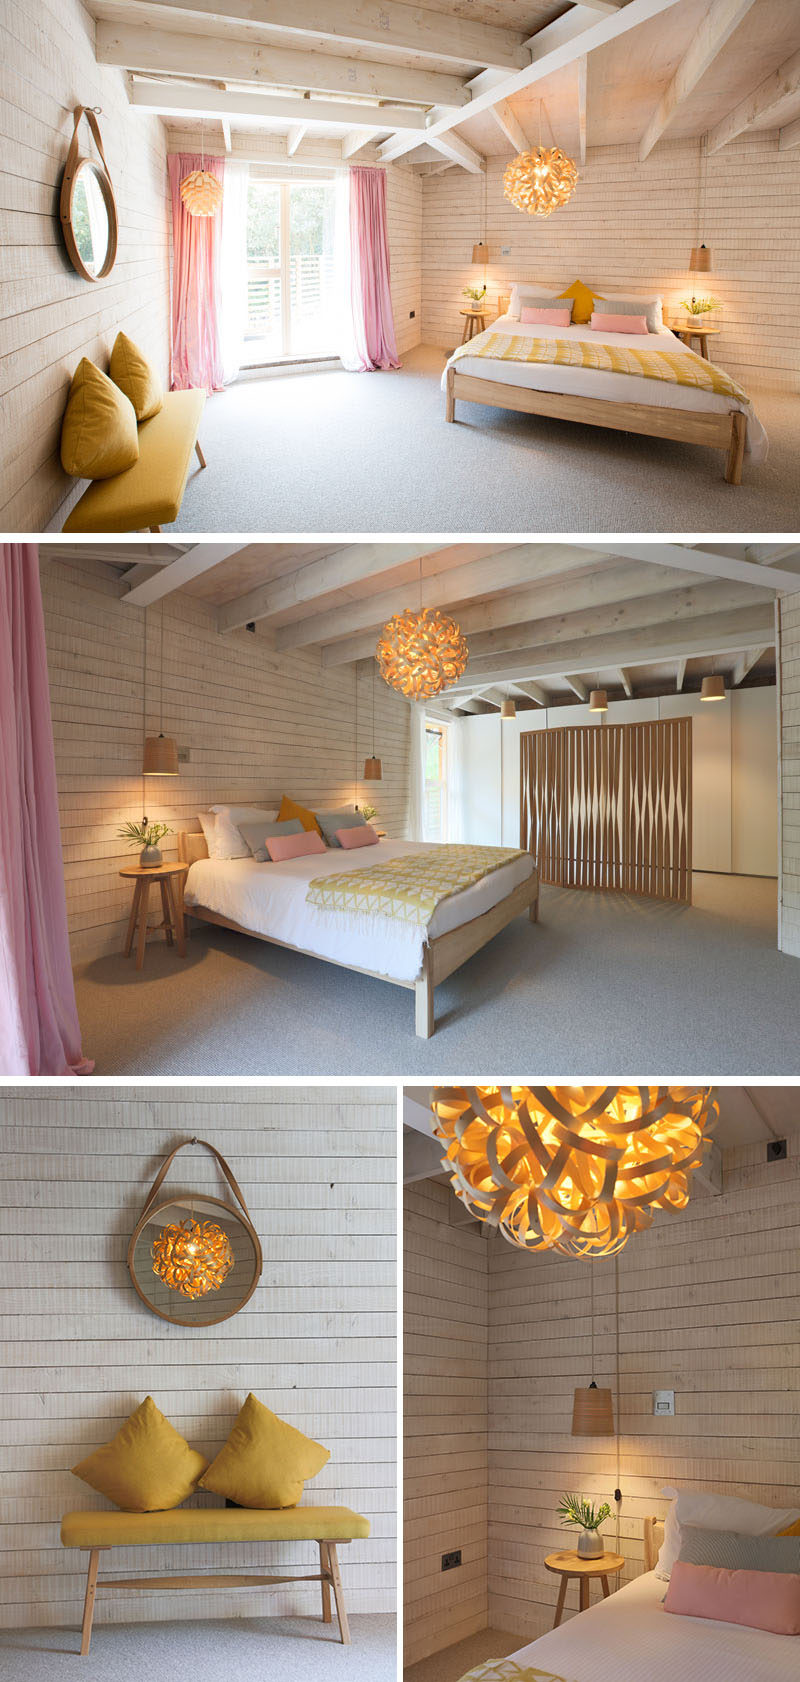 In this bedroom, light wood walls and soft colors have been used to create a bright and open space,